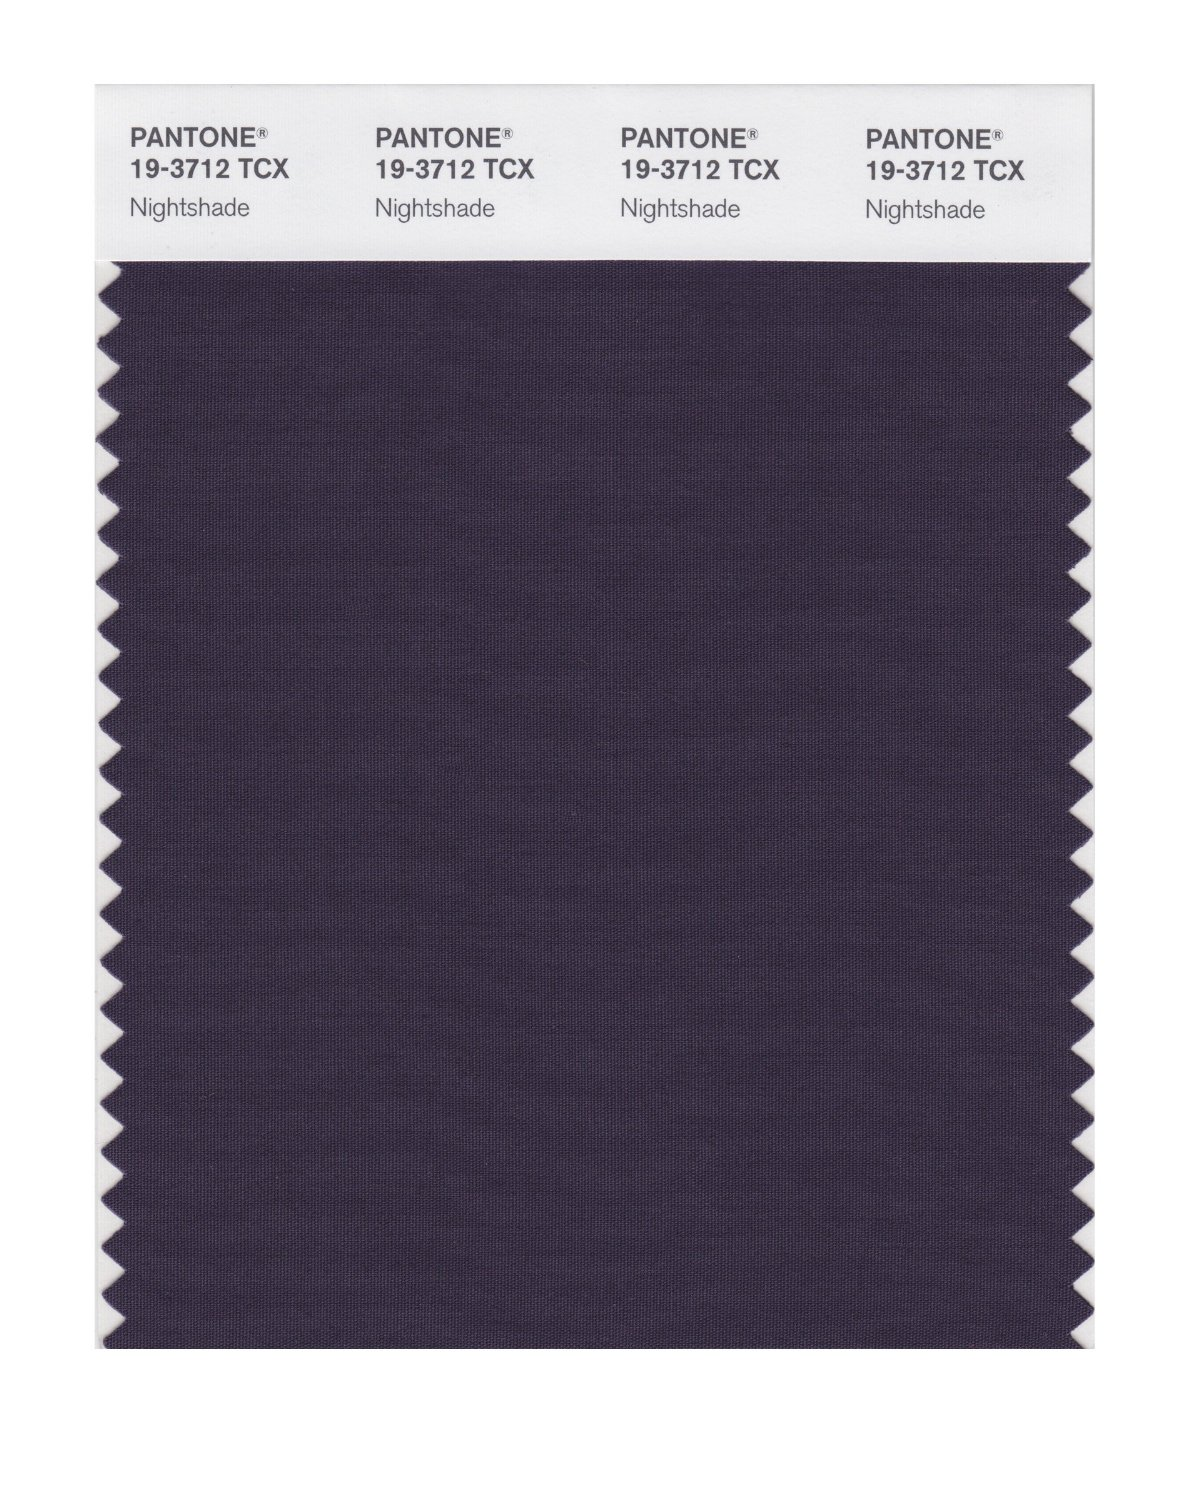 Pantone Smart Swatch 19-3712 Nightshade